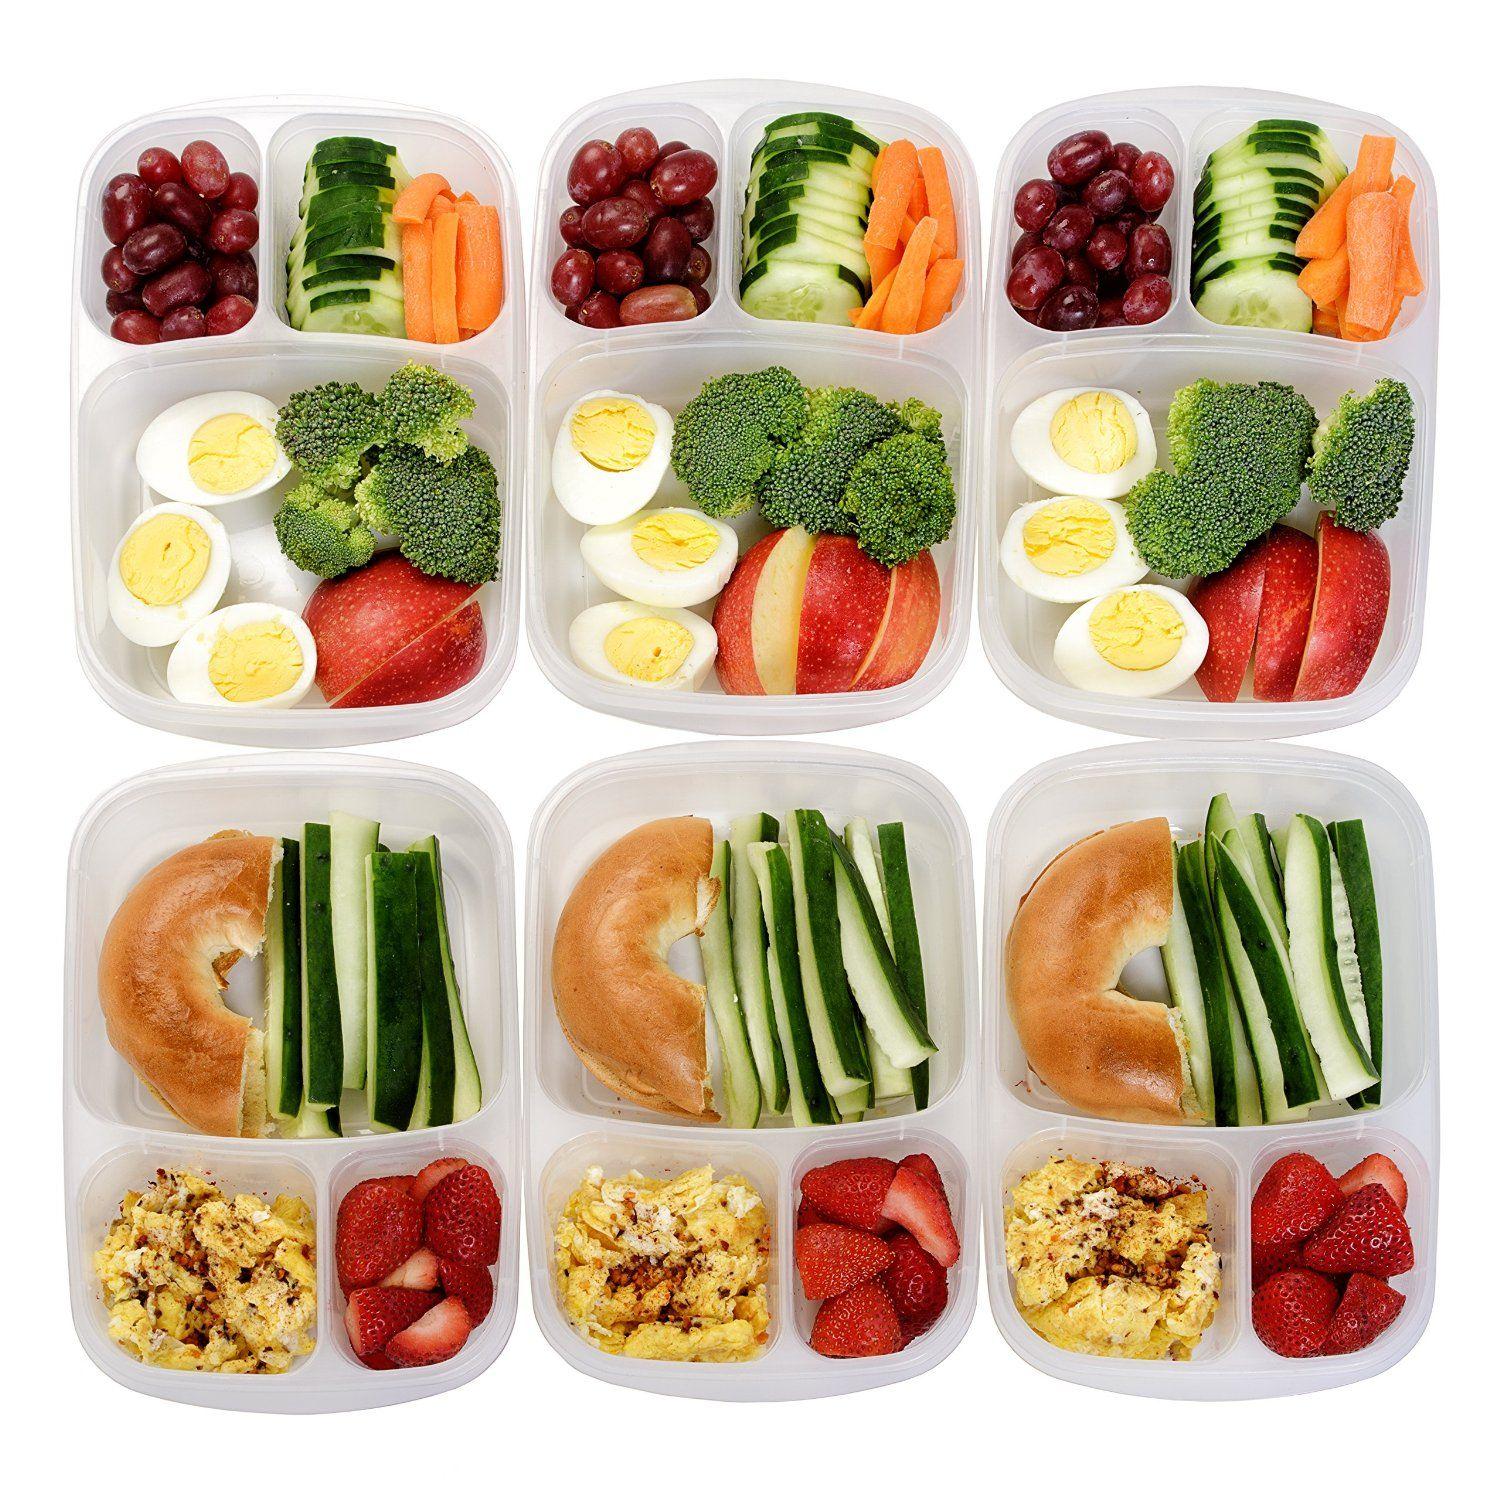 What To Eat For Fast Weight Loss 13 Make Ahead Meals And Snacks For Healthy Eating On The